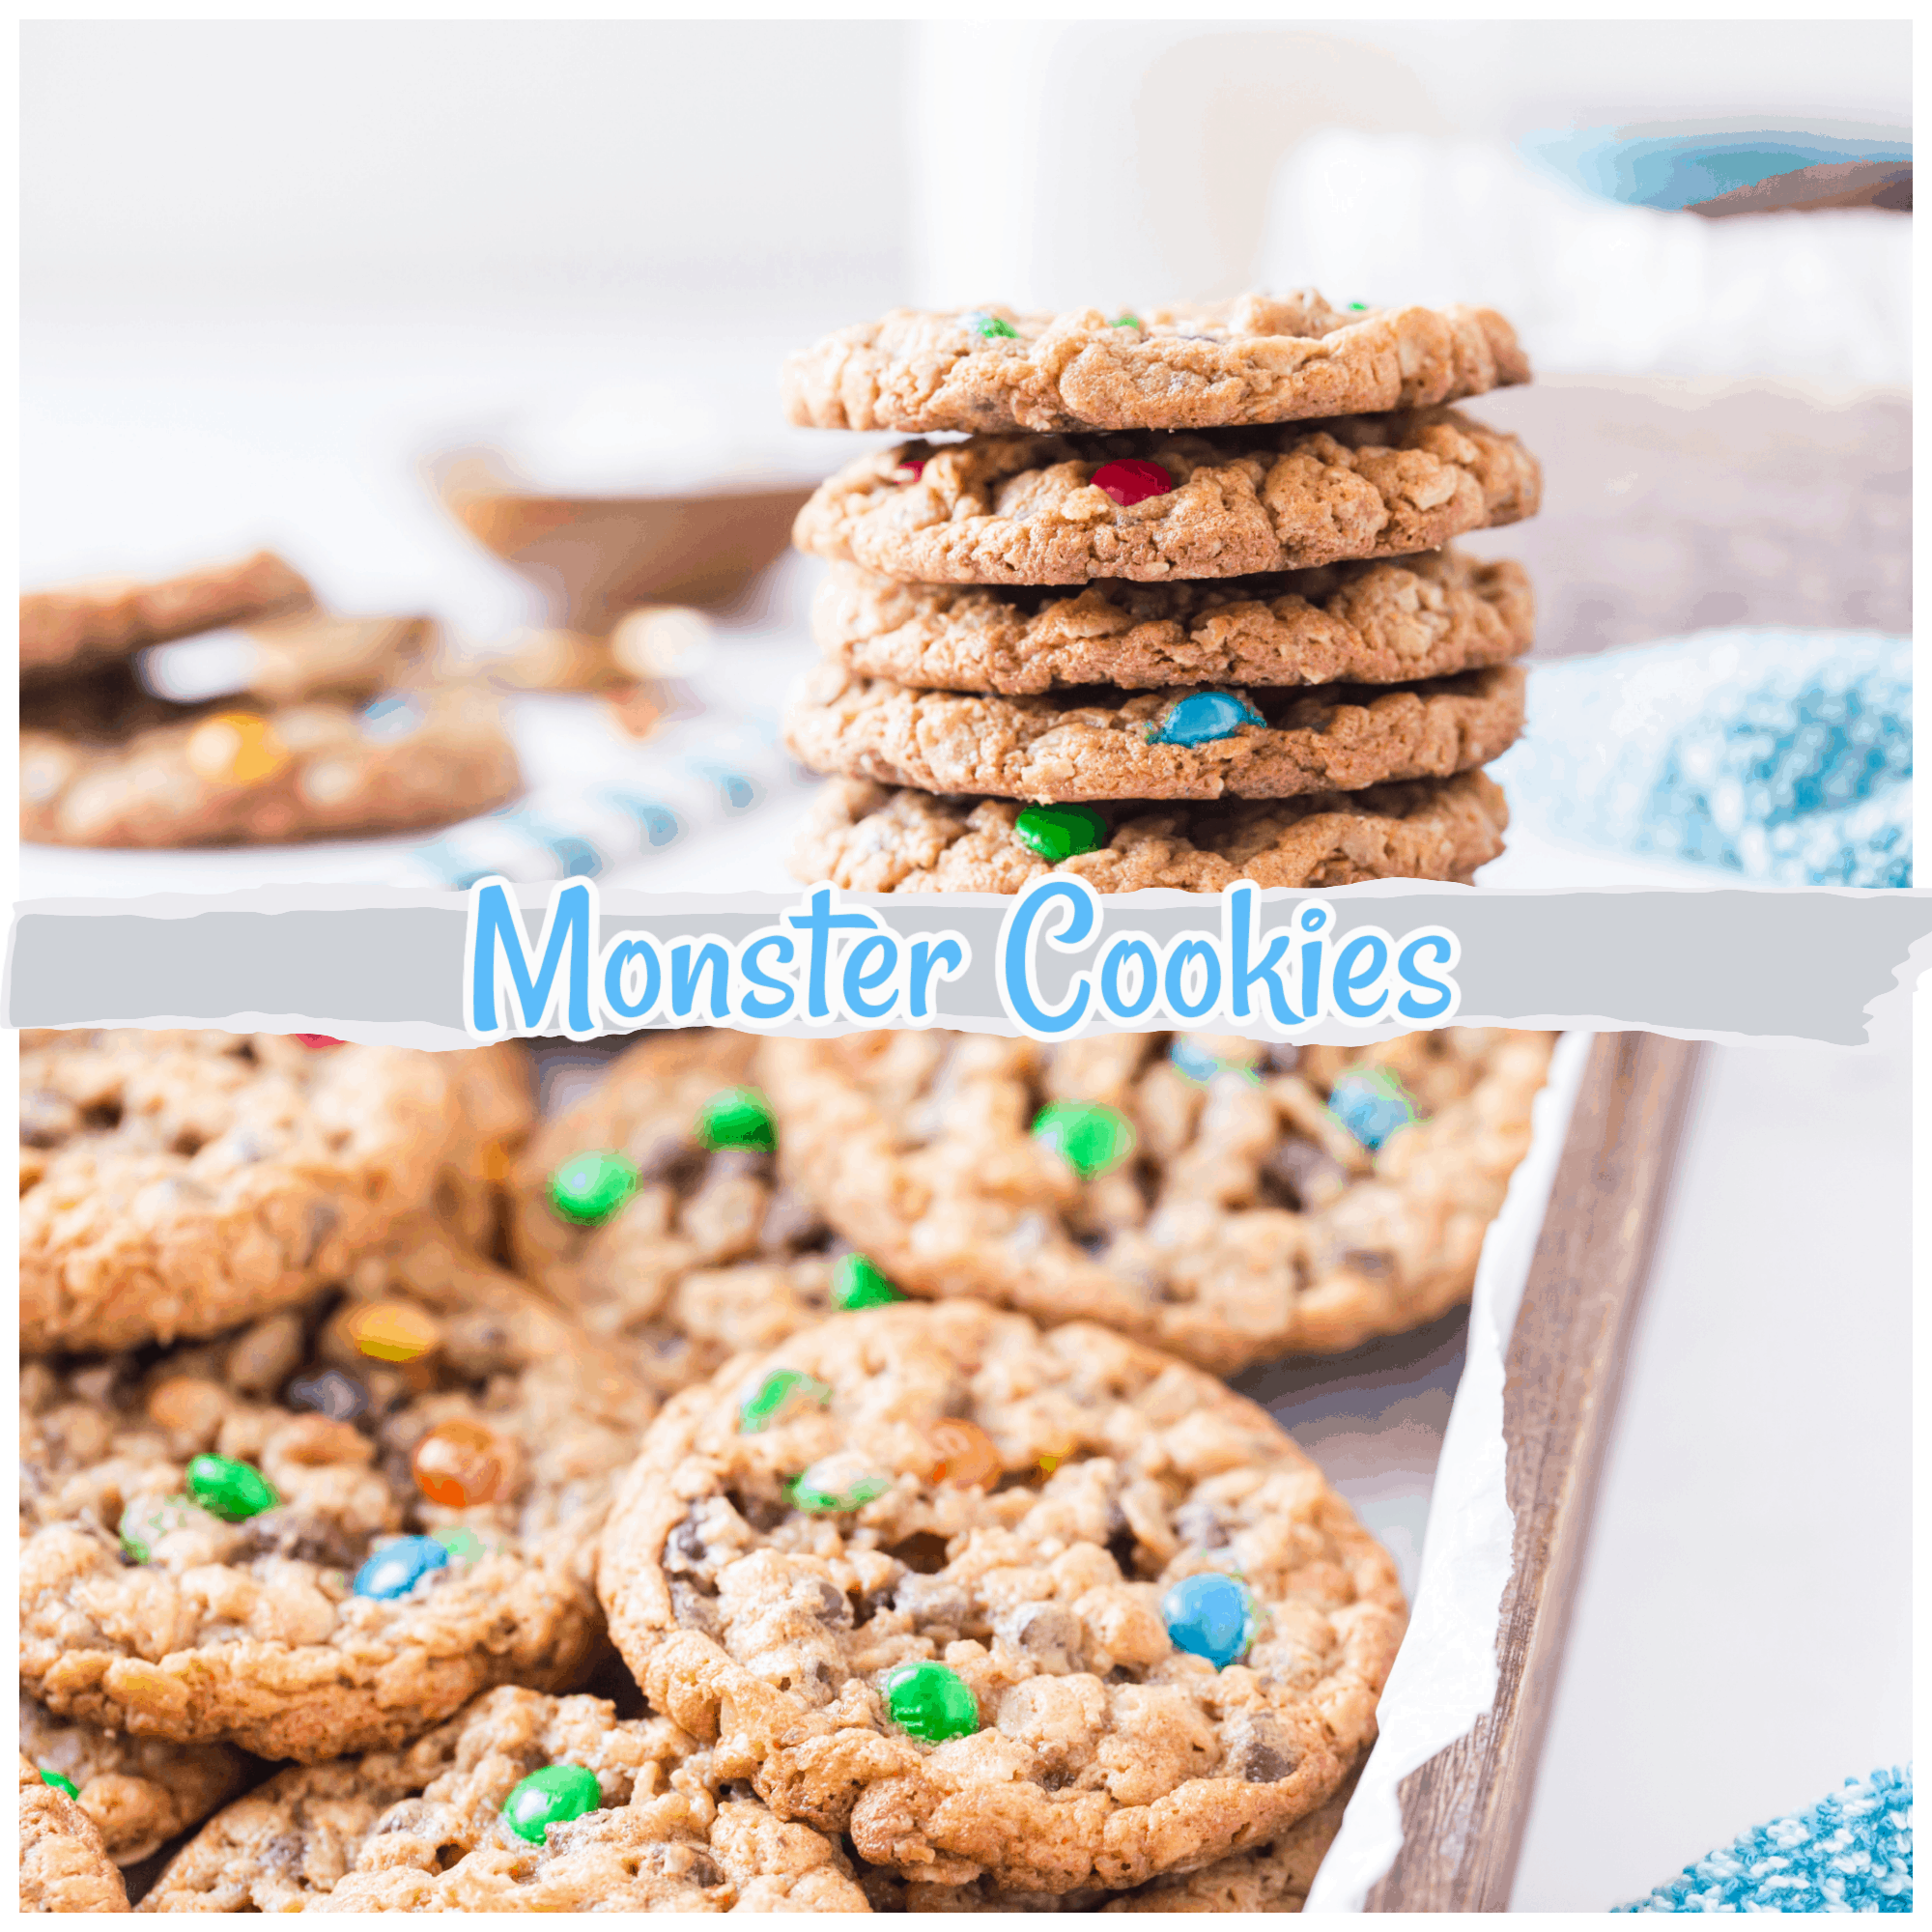 Monster cookies are oatmeal, chocolate chip, peanut butter cookie that is crispy, chewy, and sweet (as every cookie should be!). It has been said that the original creators of the recipe called it a Frankenstein's monster mashup of the cookie world (I mean, there's no flour yet it still works!). This means there are a lot of different components of cookie recipes all combined into this glorious cookie. via @Mooreorlesscook